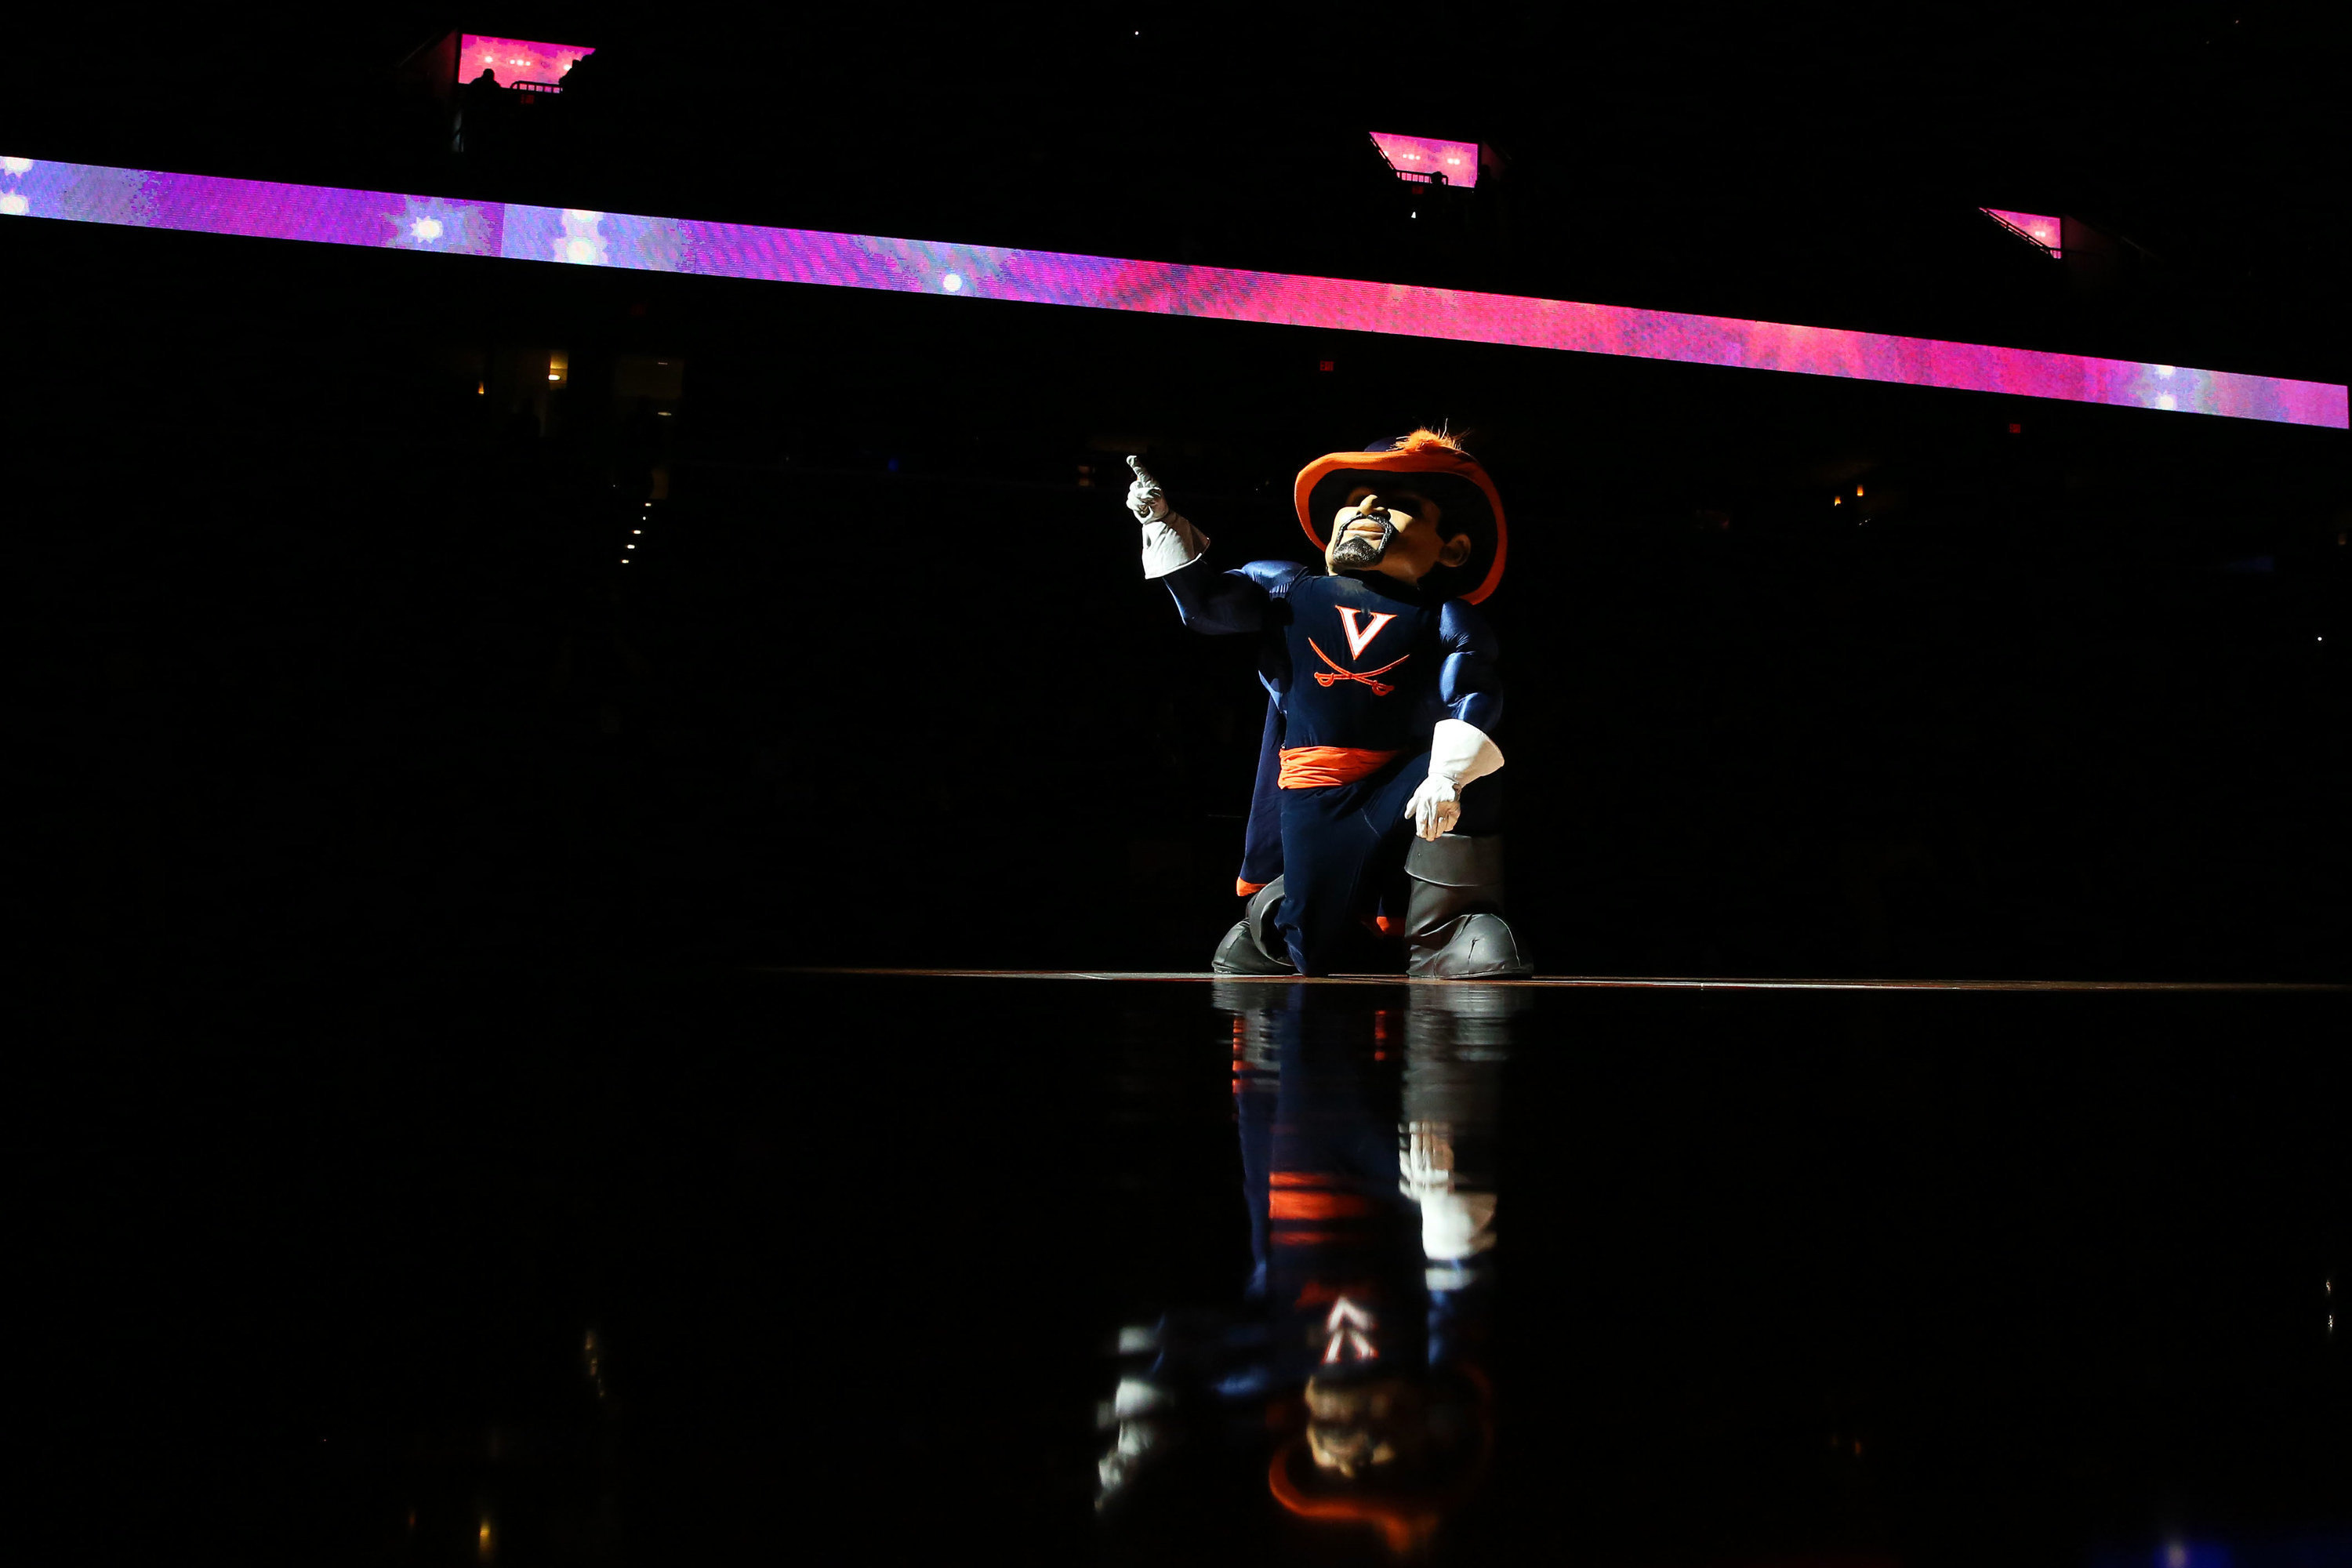 """Virginia mascot with a big """"V"""" on shirt and crossed swords on it."""